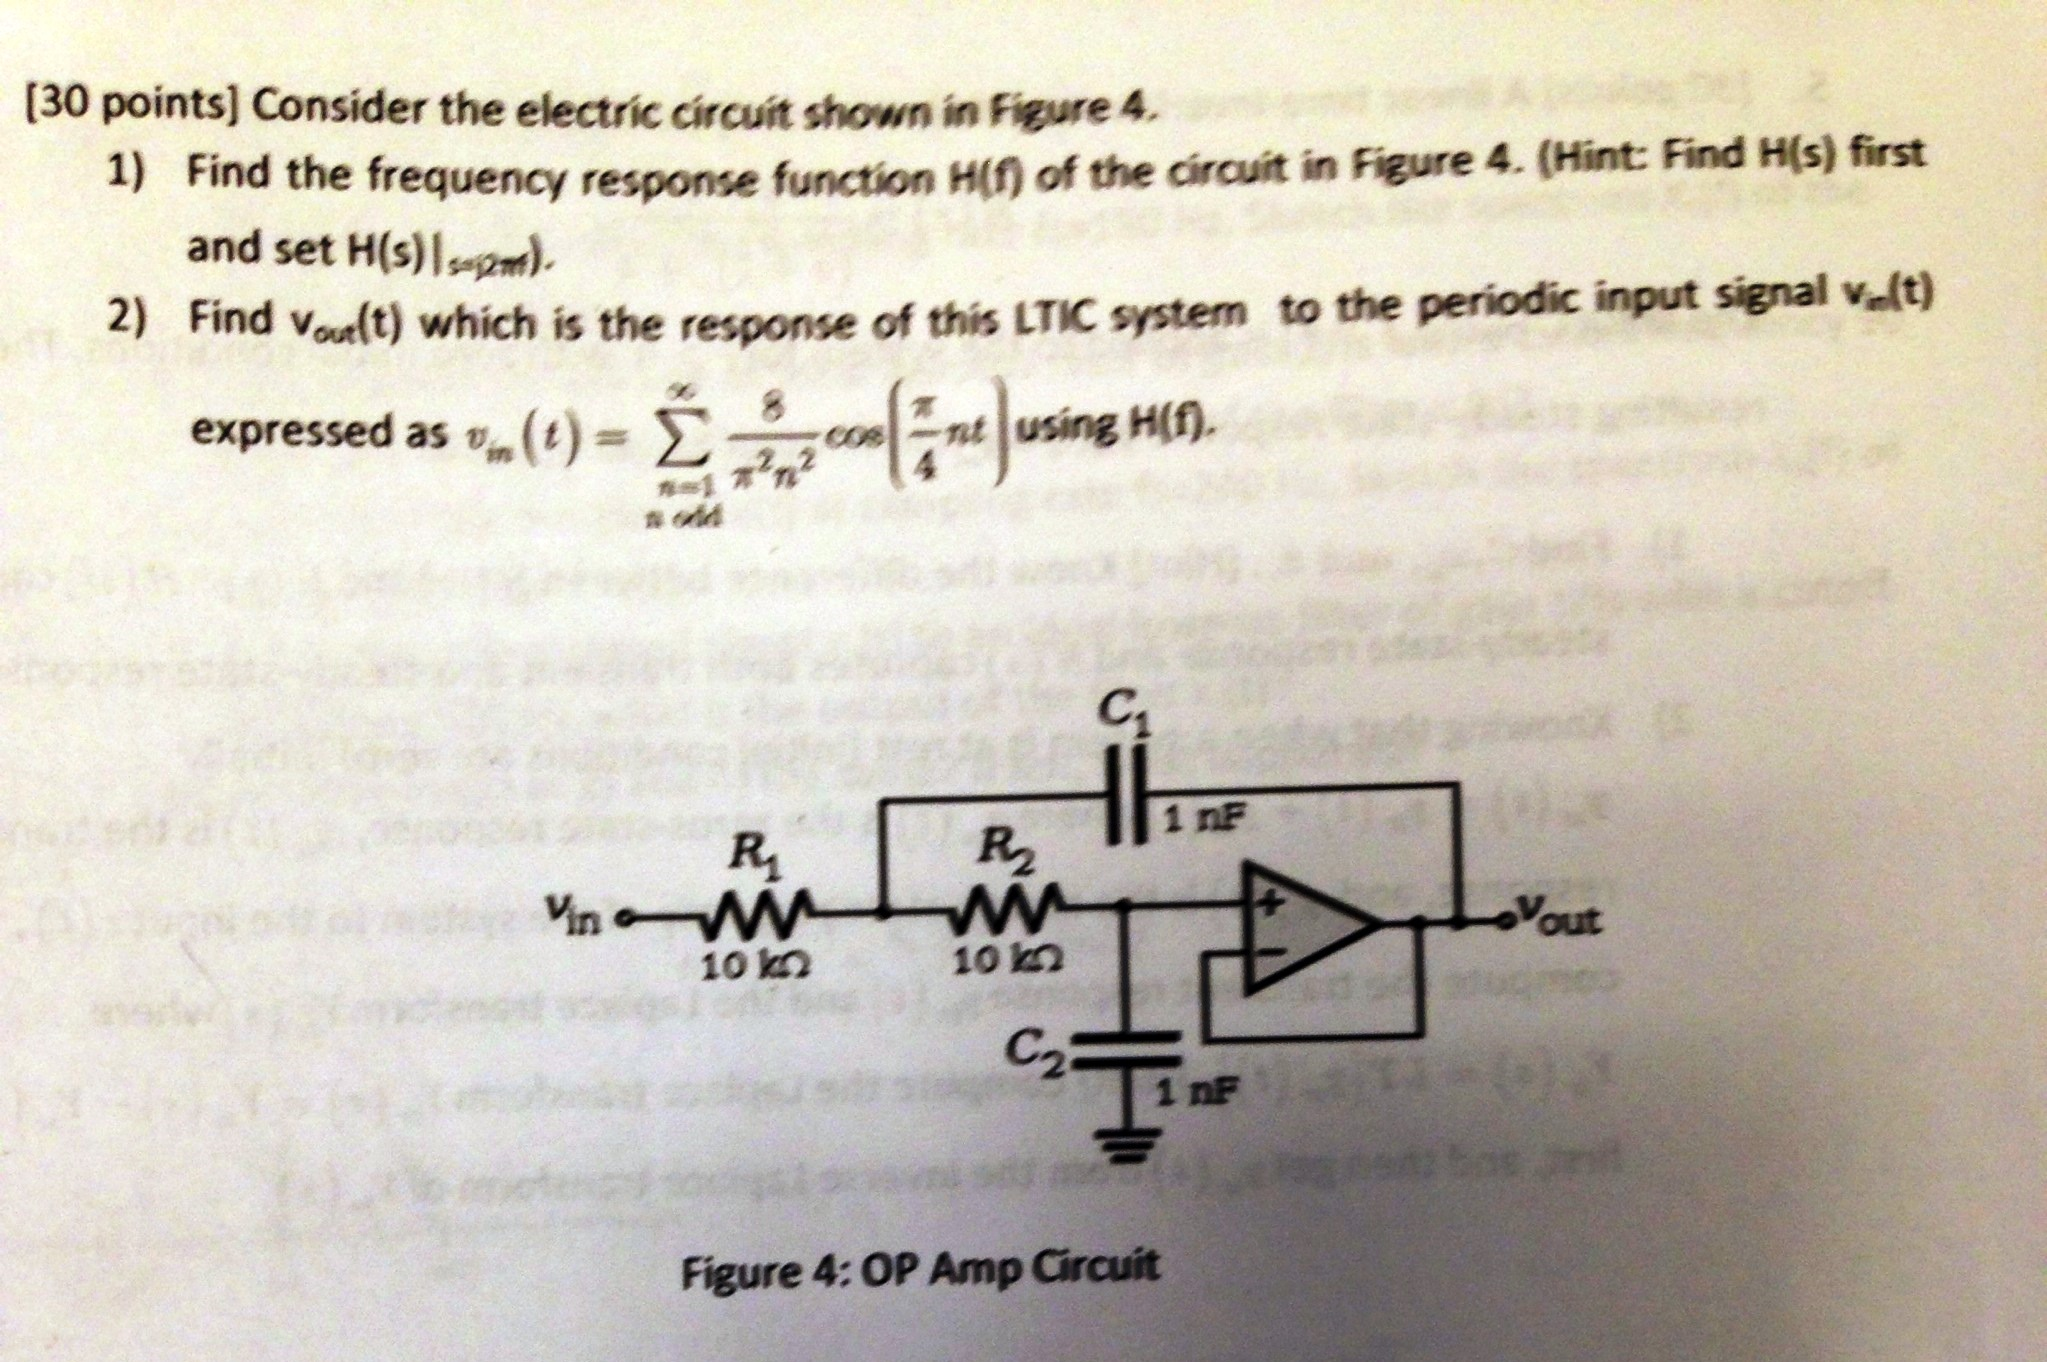 Consider the electric circuit shown in figure 4.